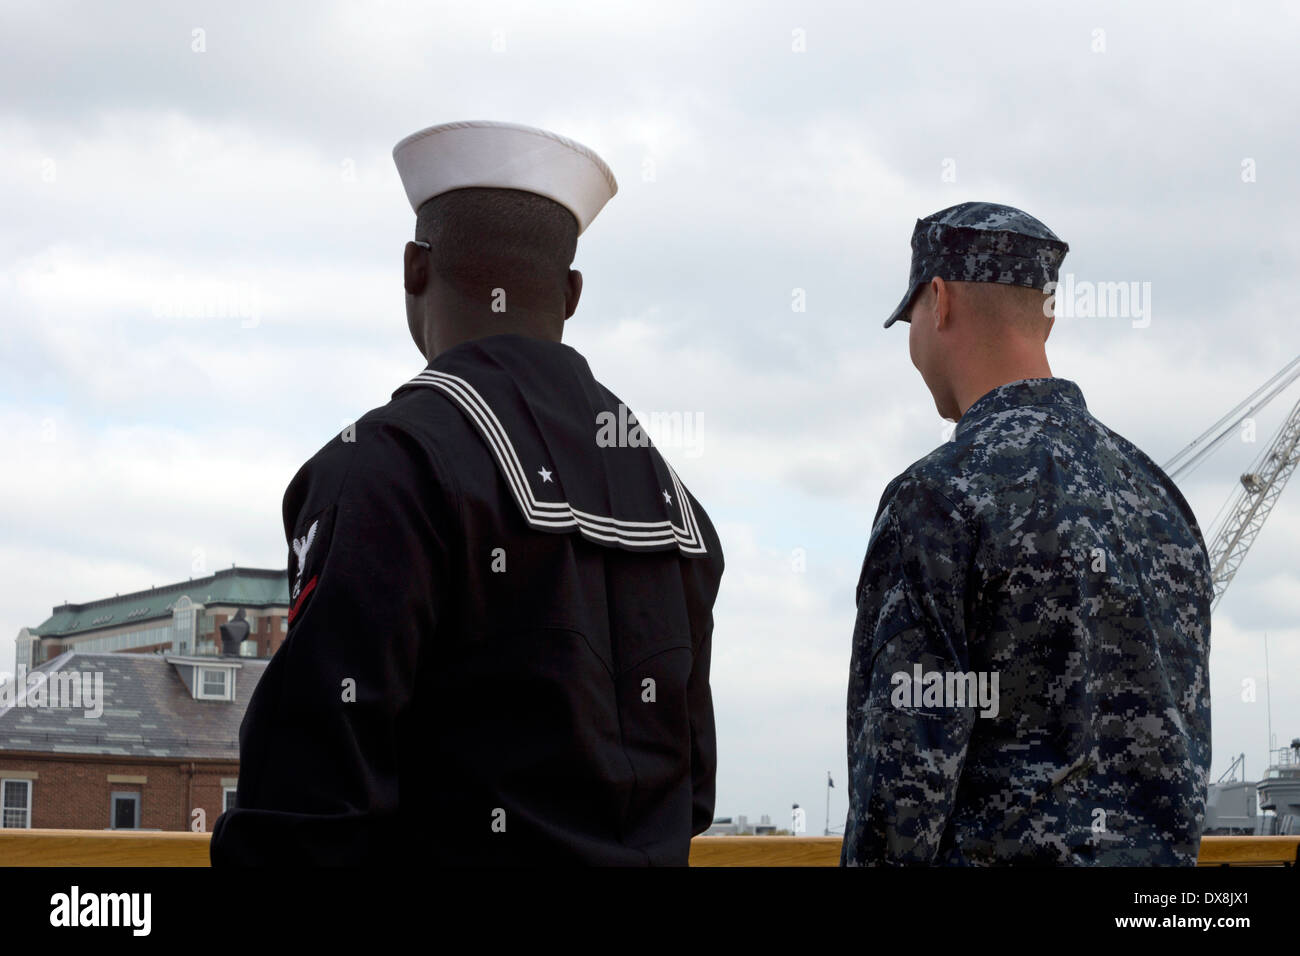 Back view of two American sailors, one in dress uniform, one in working uniform, at Charlestown Navy Yard, Boston, Stock Photo